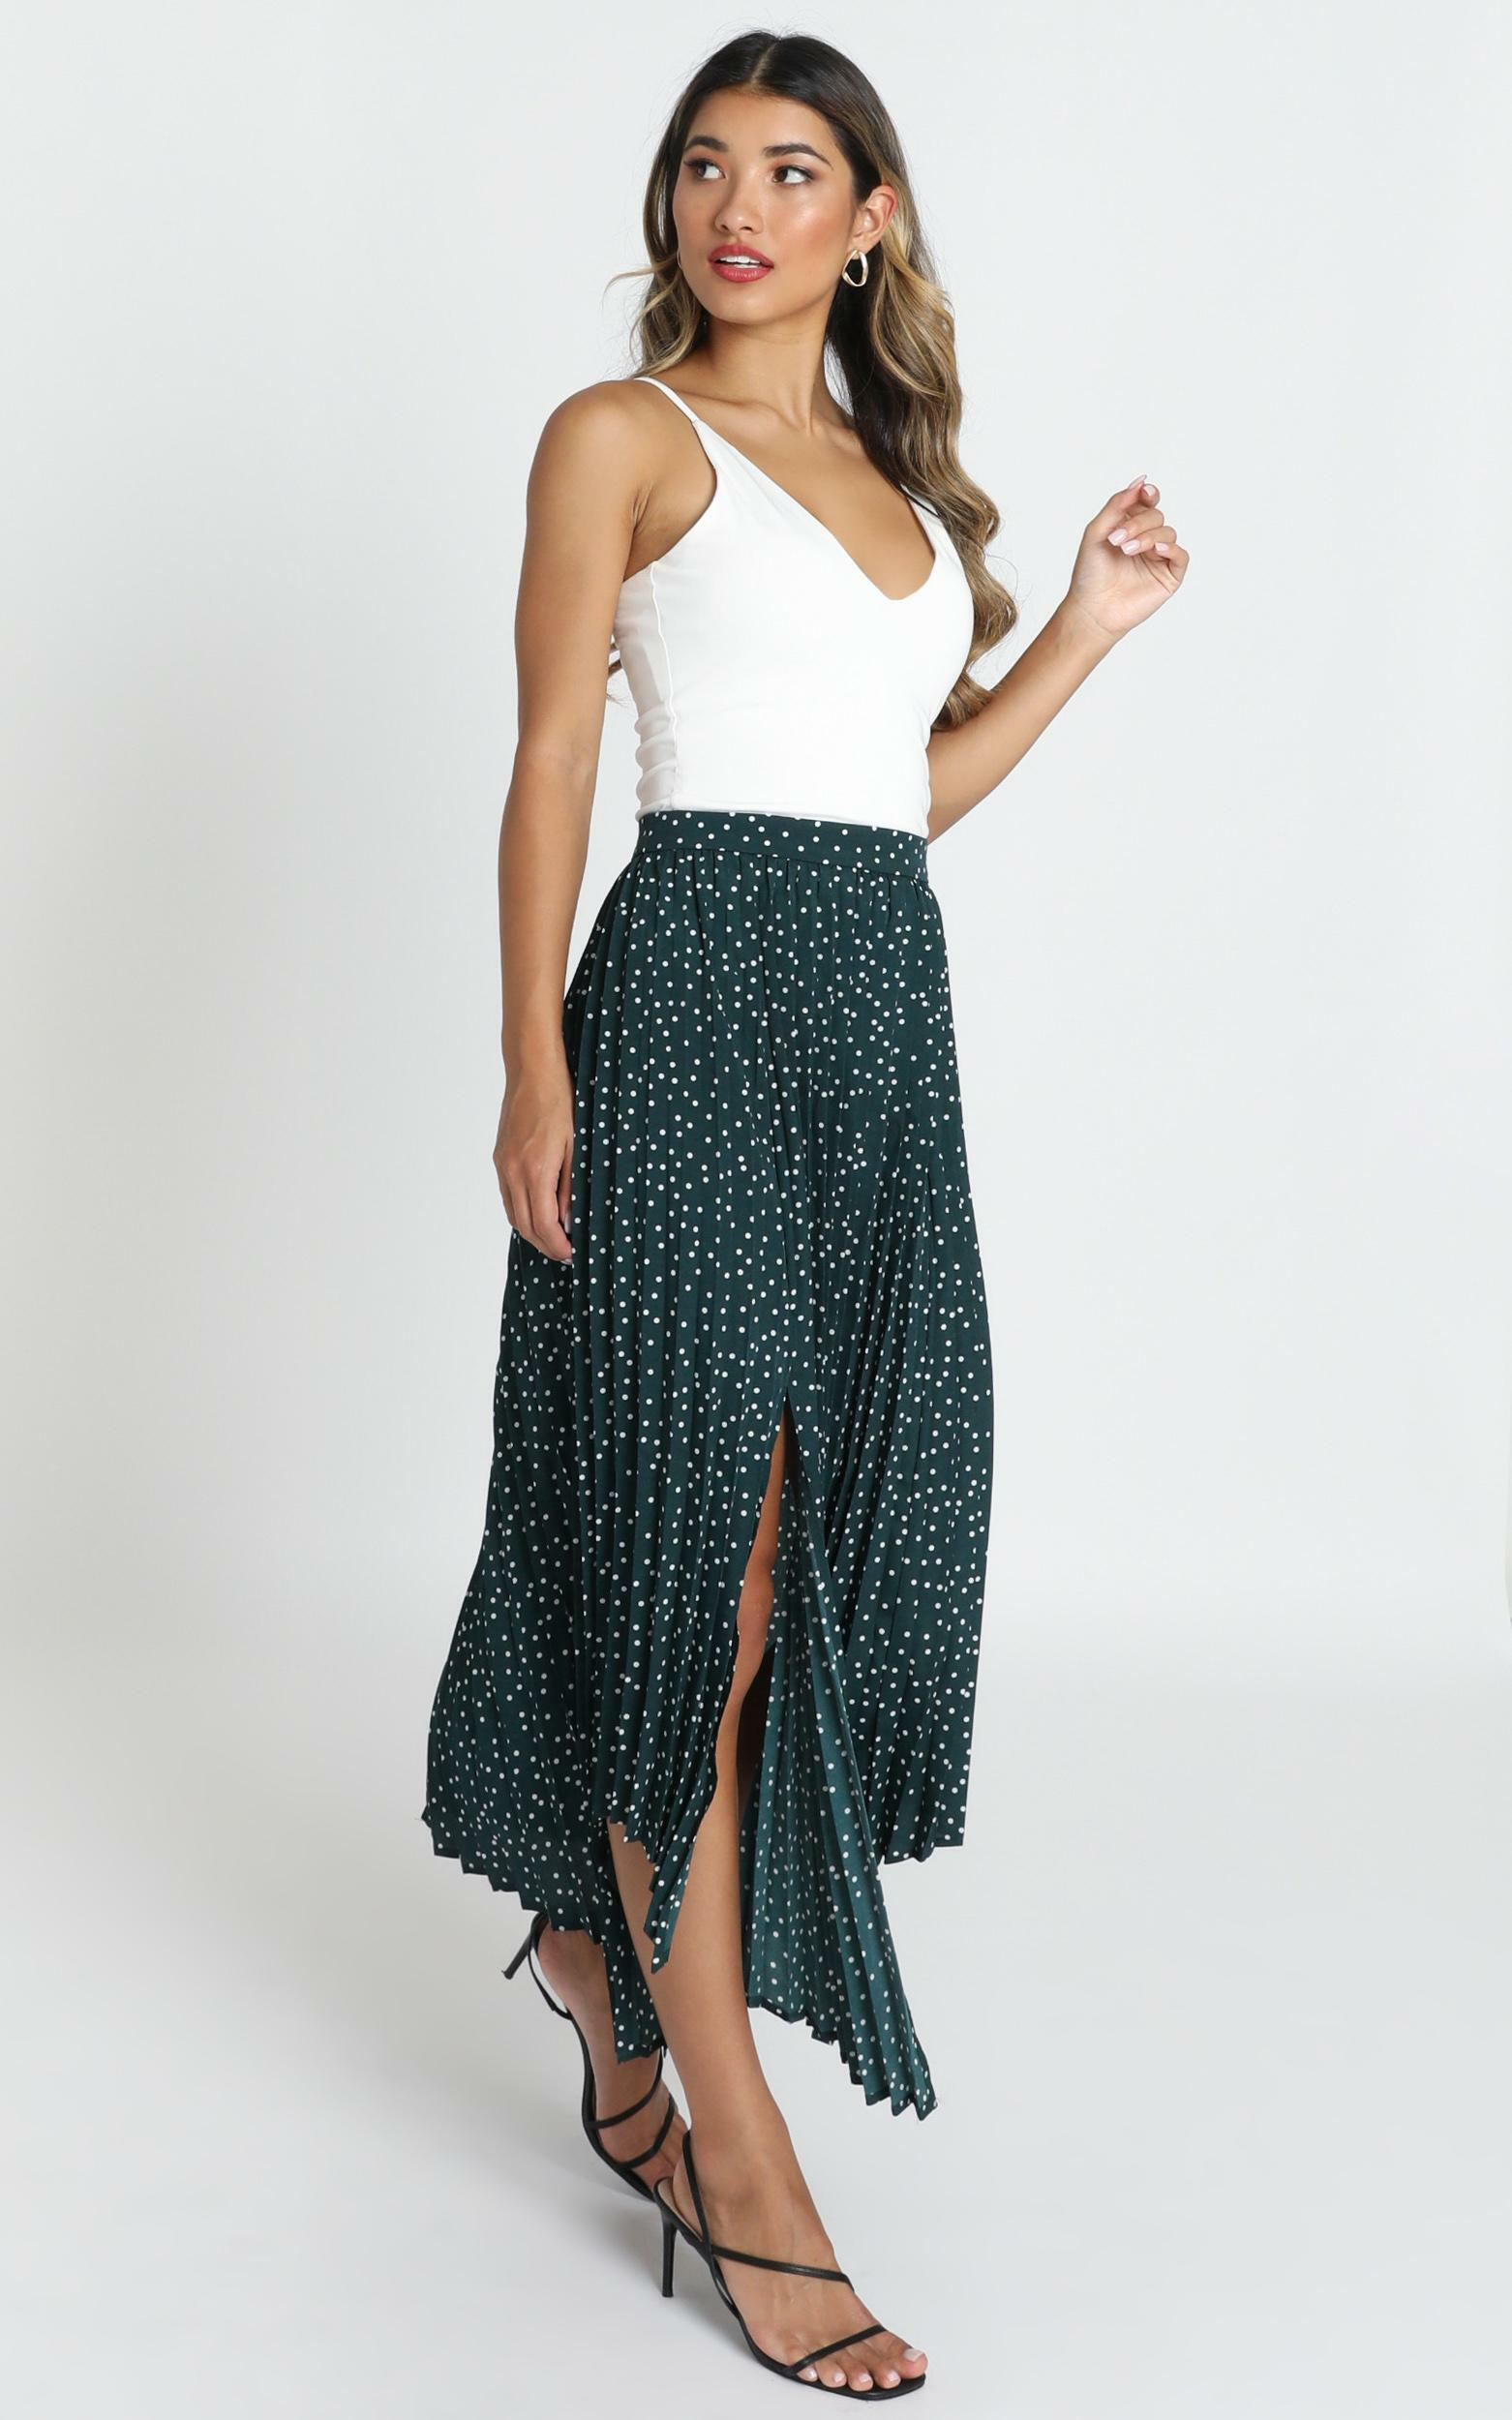 Feel The Rain skirt in emerald spot - 12 (L), Green, hi-res image number null